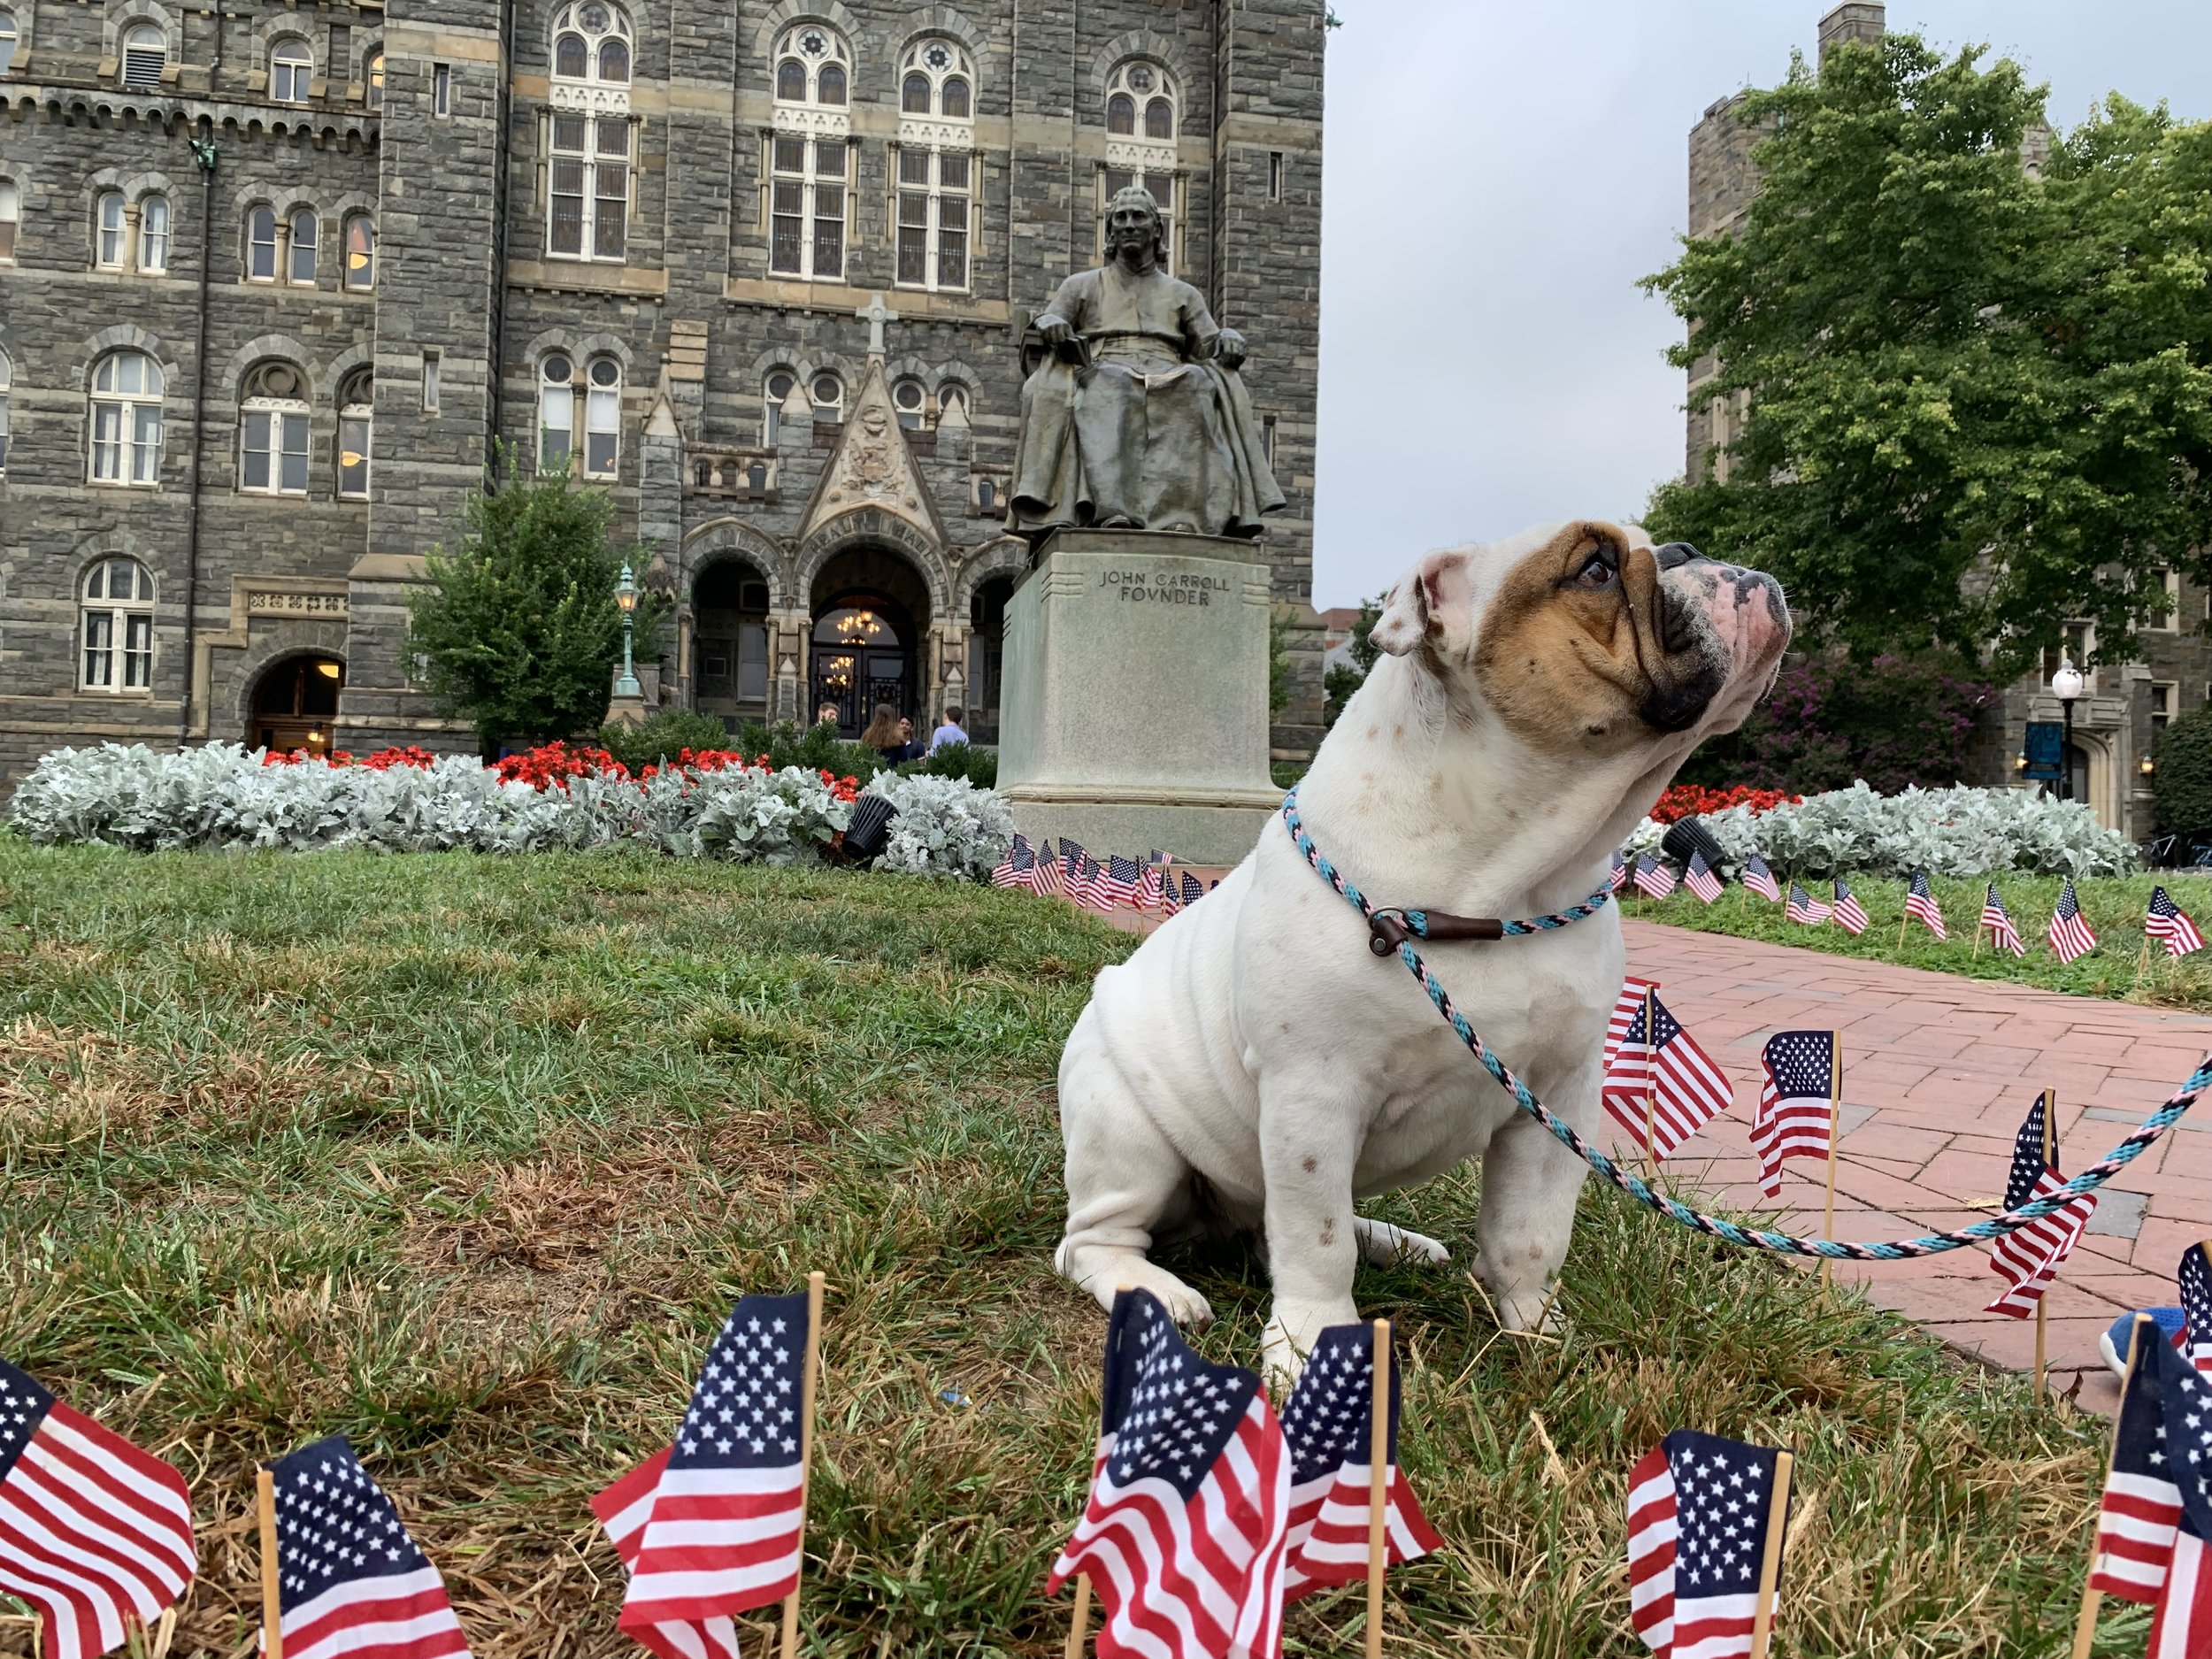 Georgetown mascot Jack the Bulldog poses in front of the John Carroll statue. (9/11/2019)